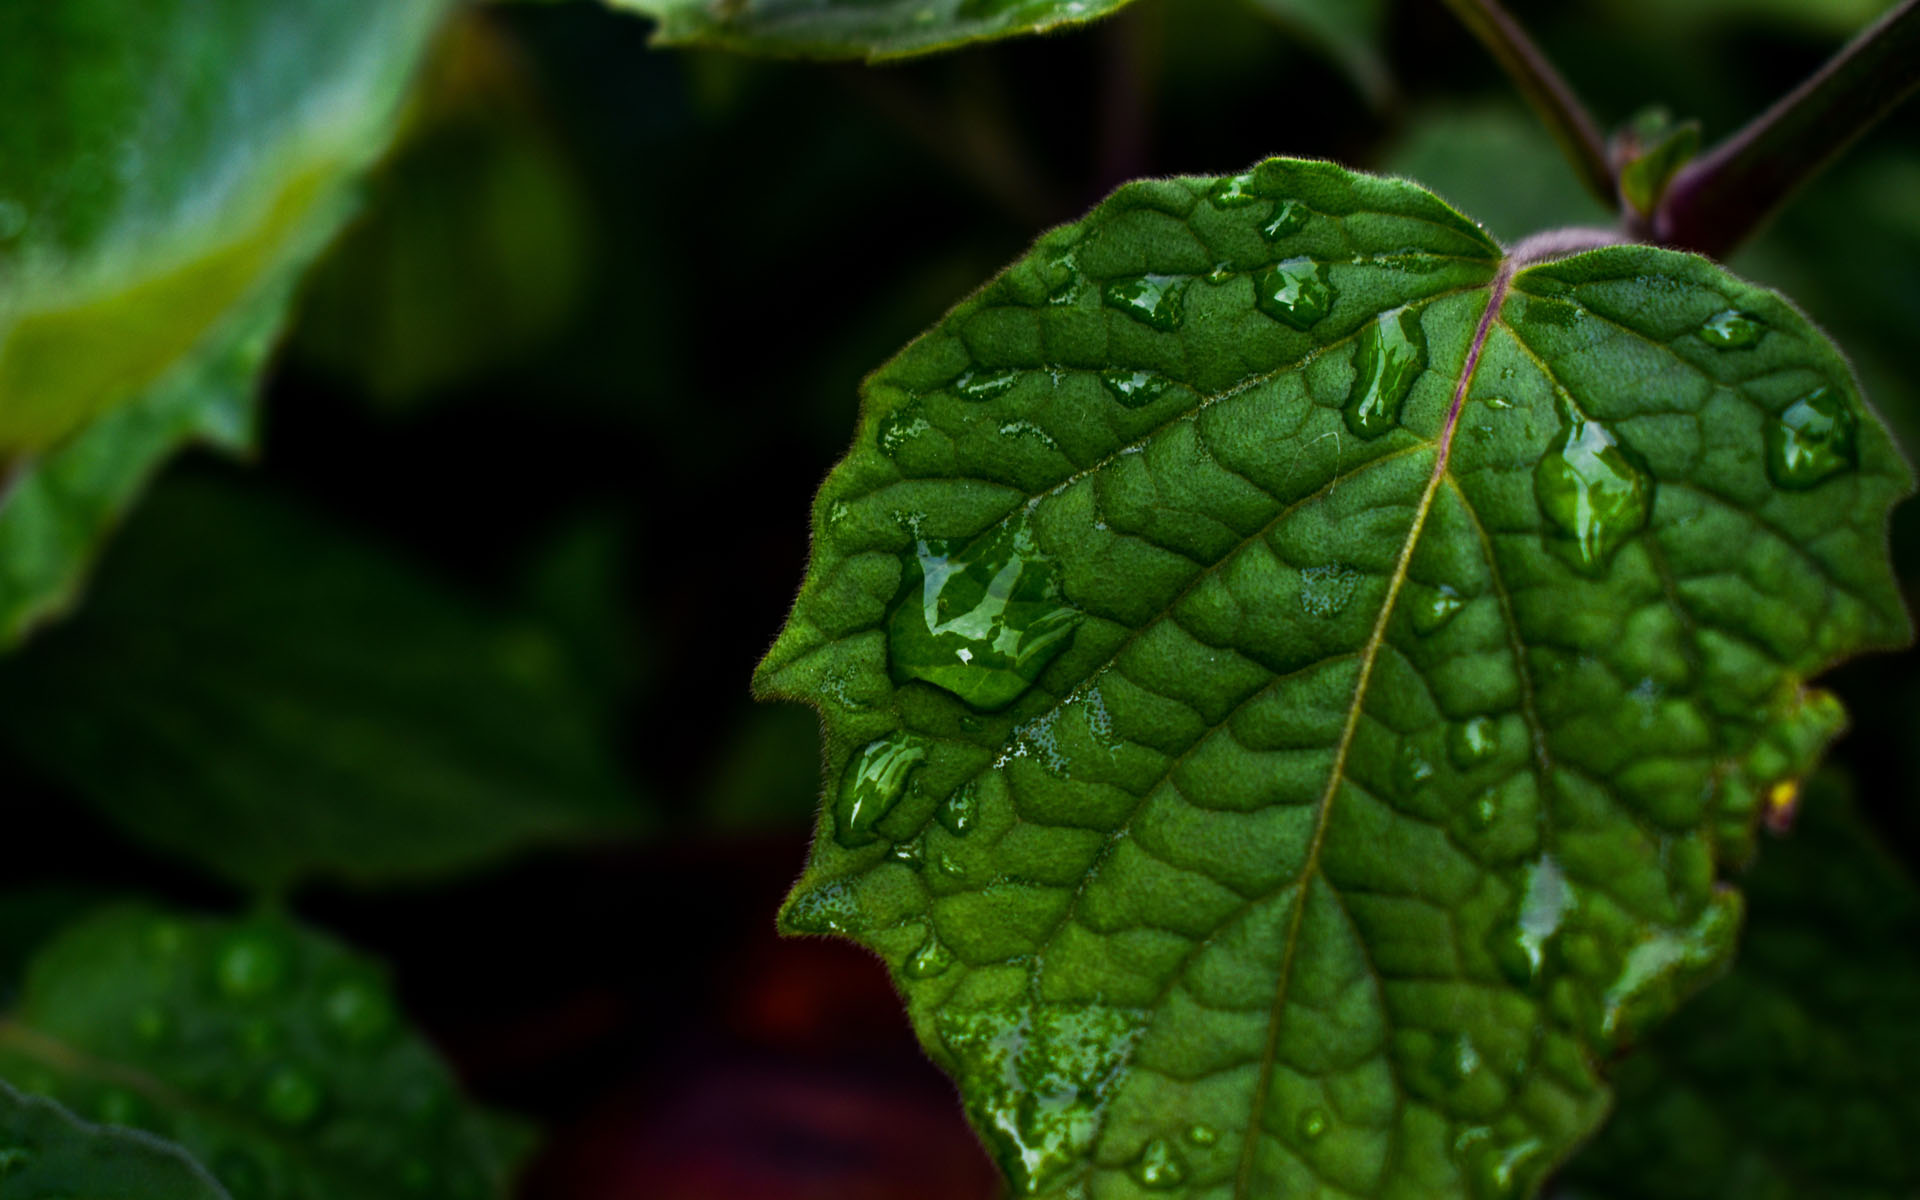 Live Wallpaper On Home Screen For Iphone X Drops Of Water On Leaf Hd Wallpaper Hd Latest Wallpapers